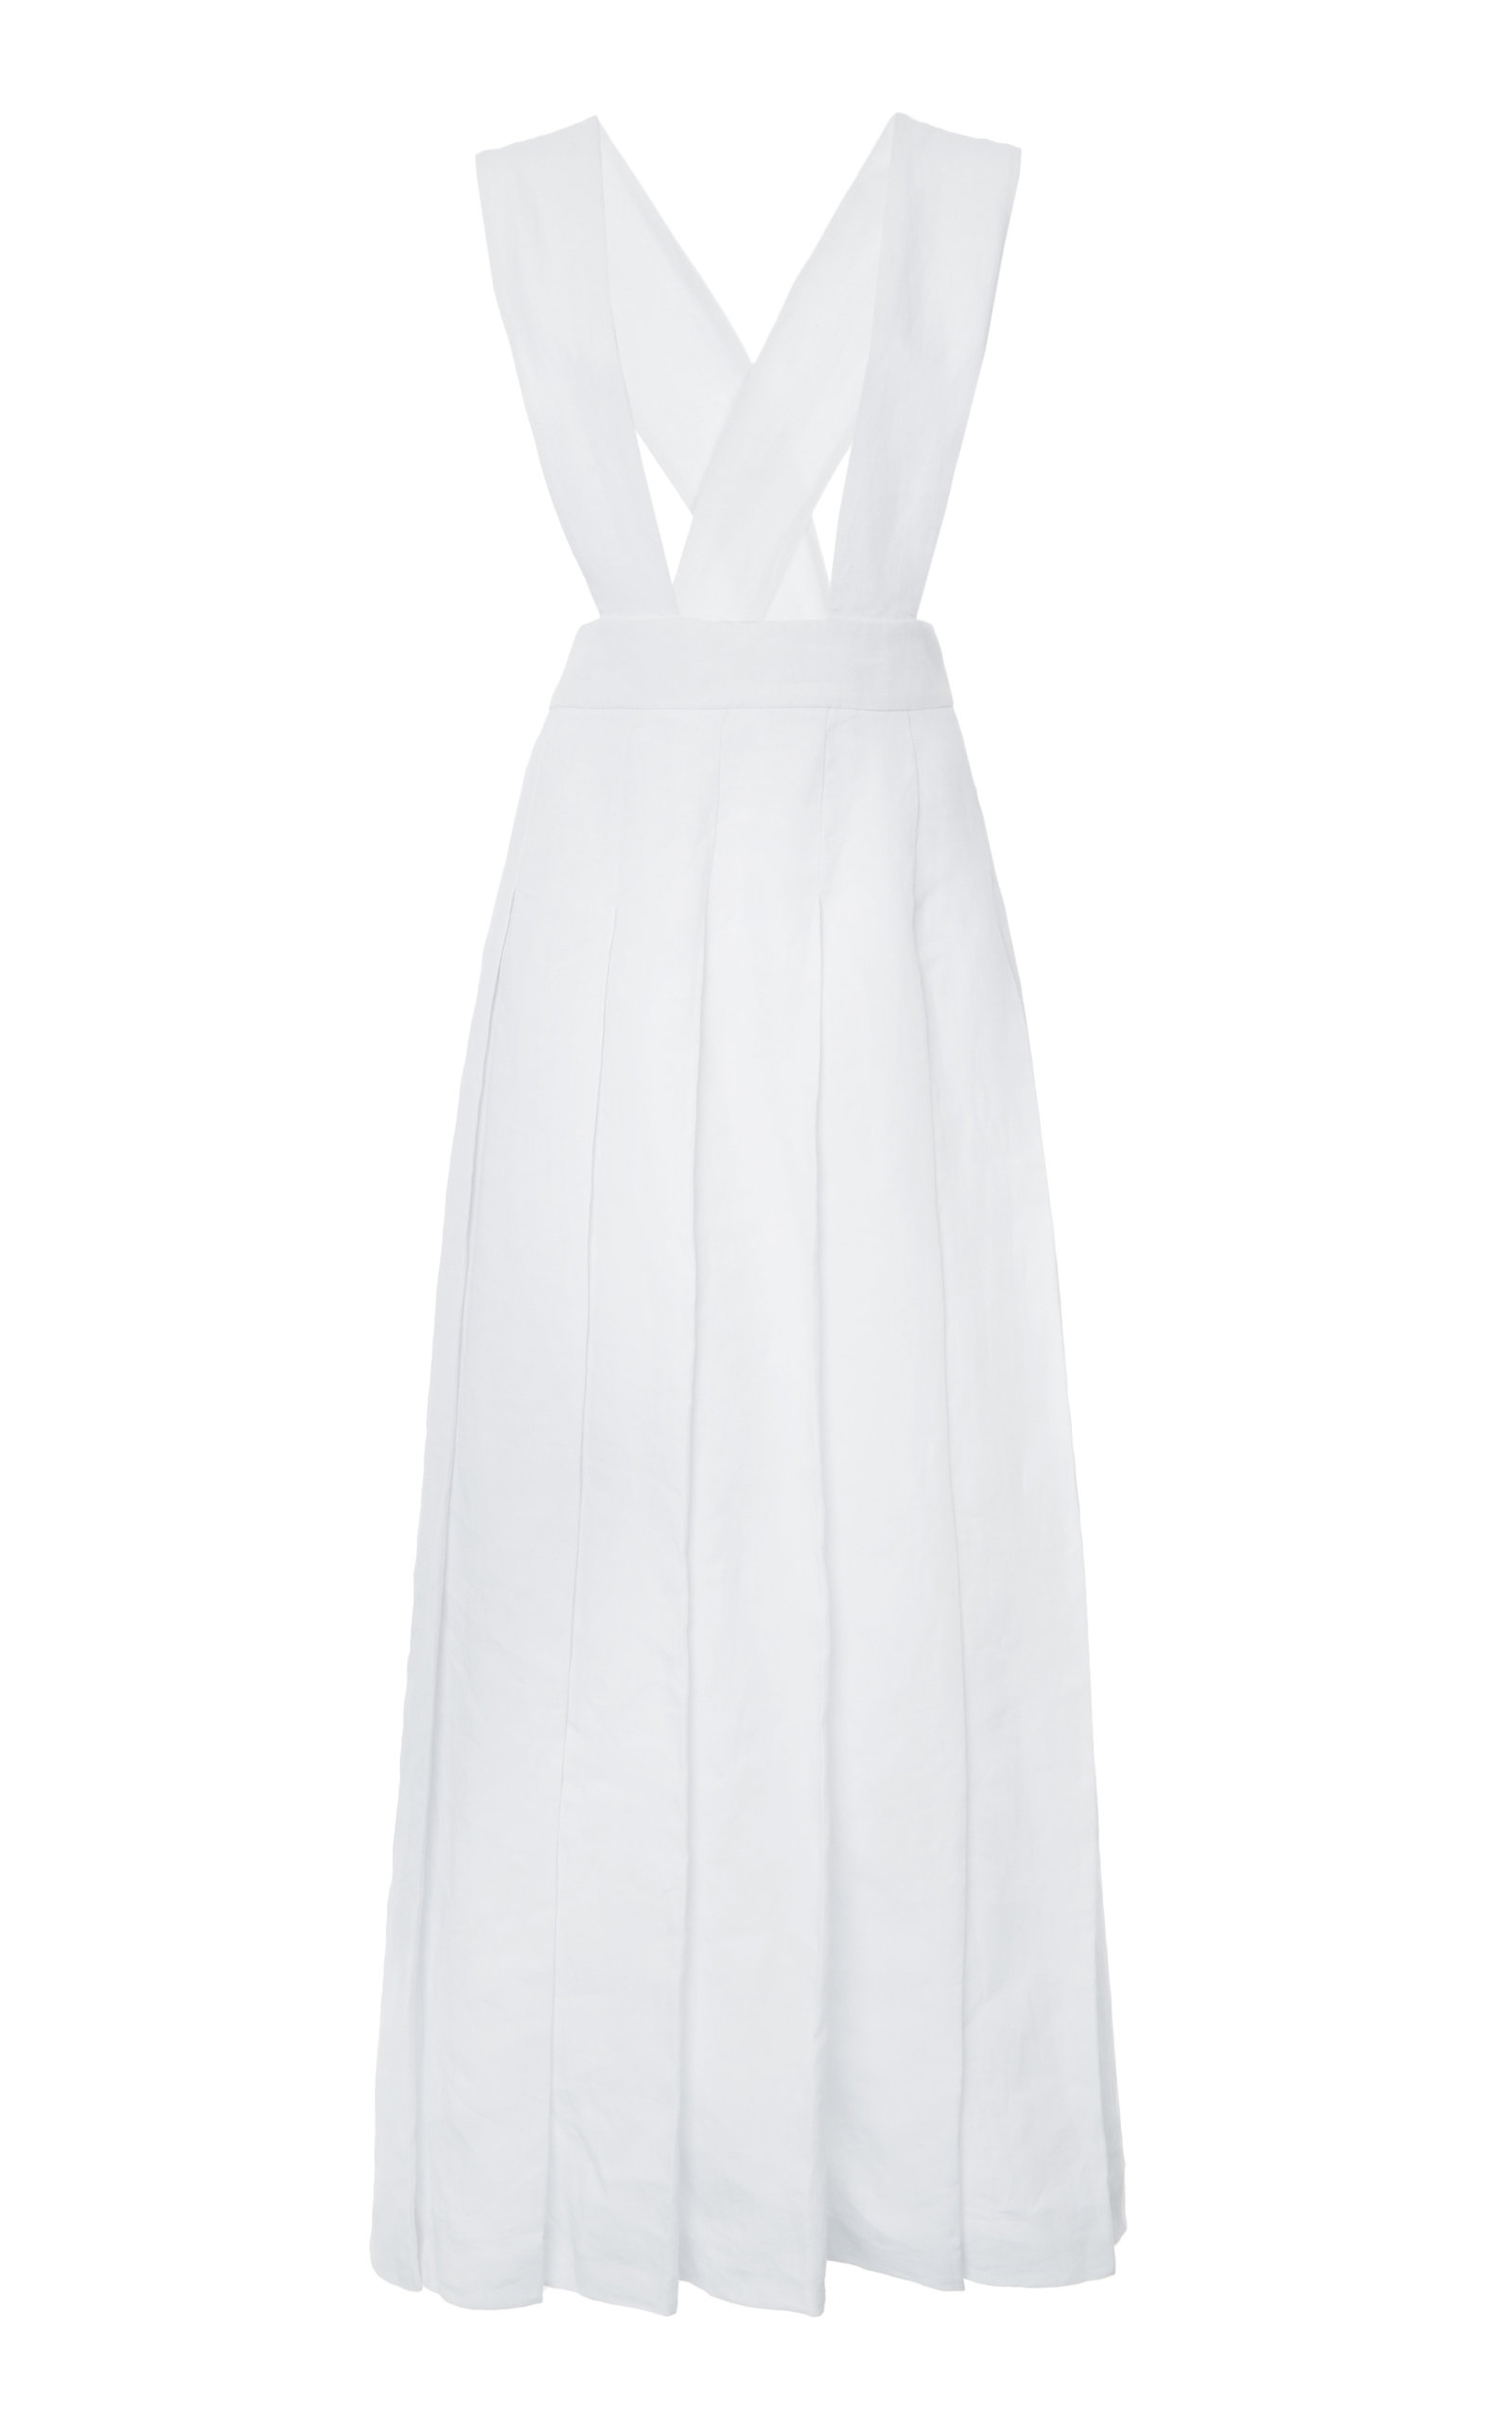 Buy Miu Miu Pleated Linen Pinafore Maxi Dress online, shop Miu Miu at the best price